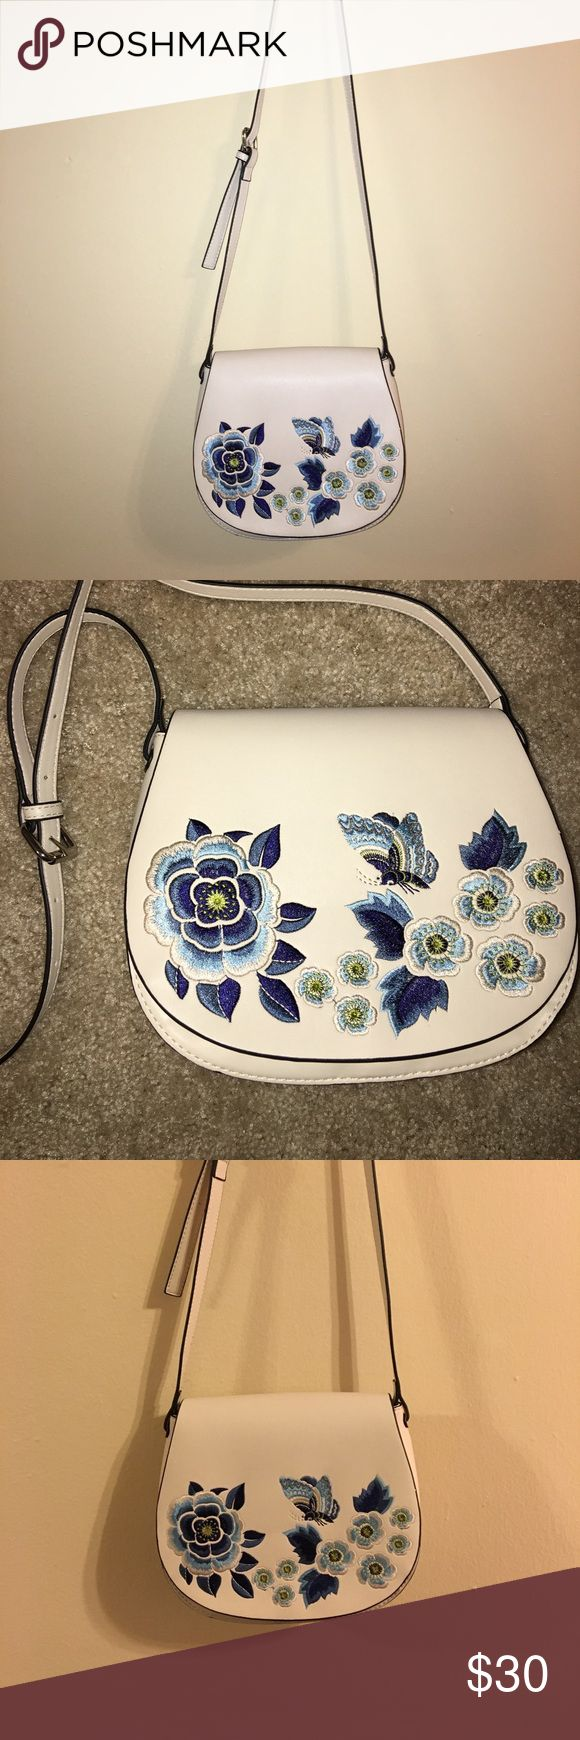 Summer time cross-body with blue detailing Such a cute purse with blue flower and bird detailing on the front. Medium sized about, not too large but fits a good amount inside. Adjustable strap and soft leather material. Perfect condition never used. French Connection Bags Crossbody Bags